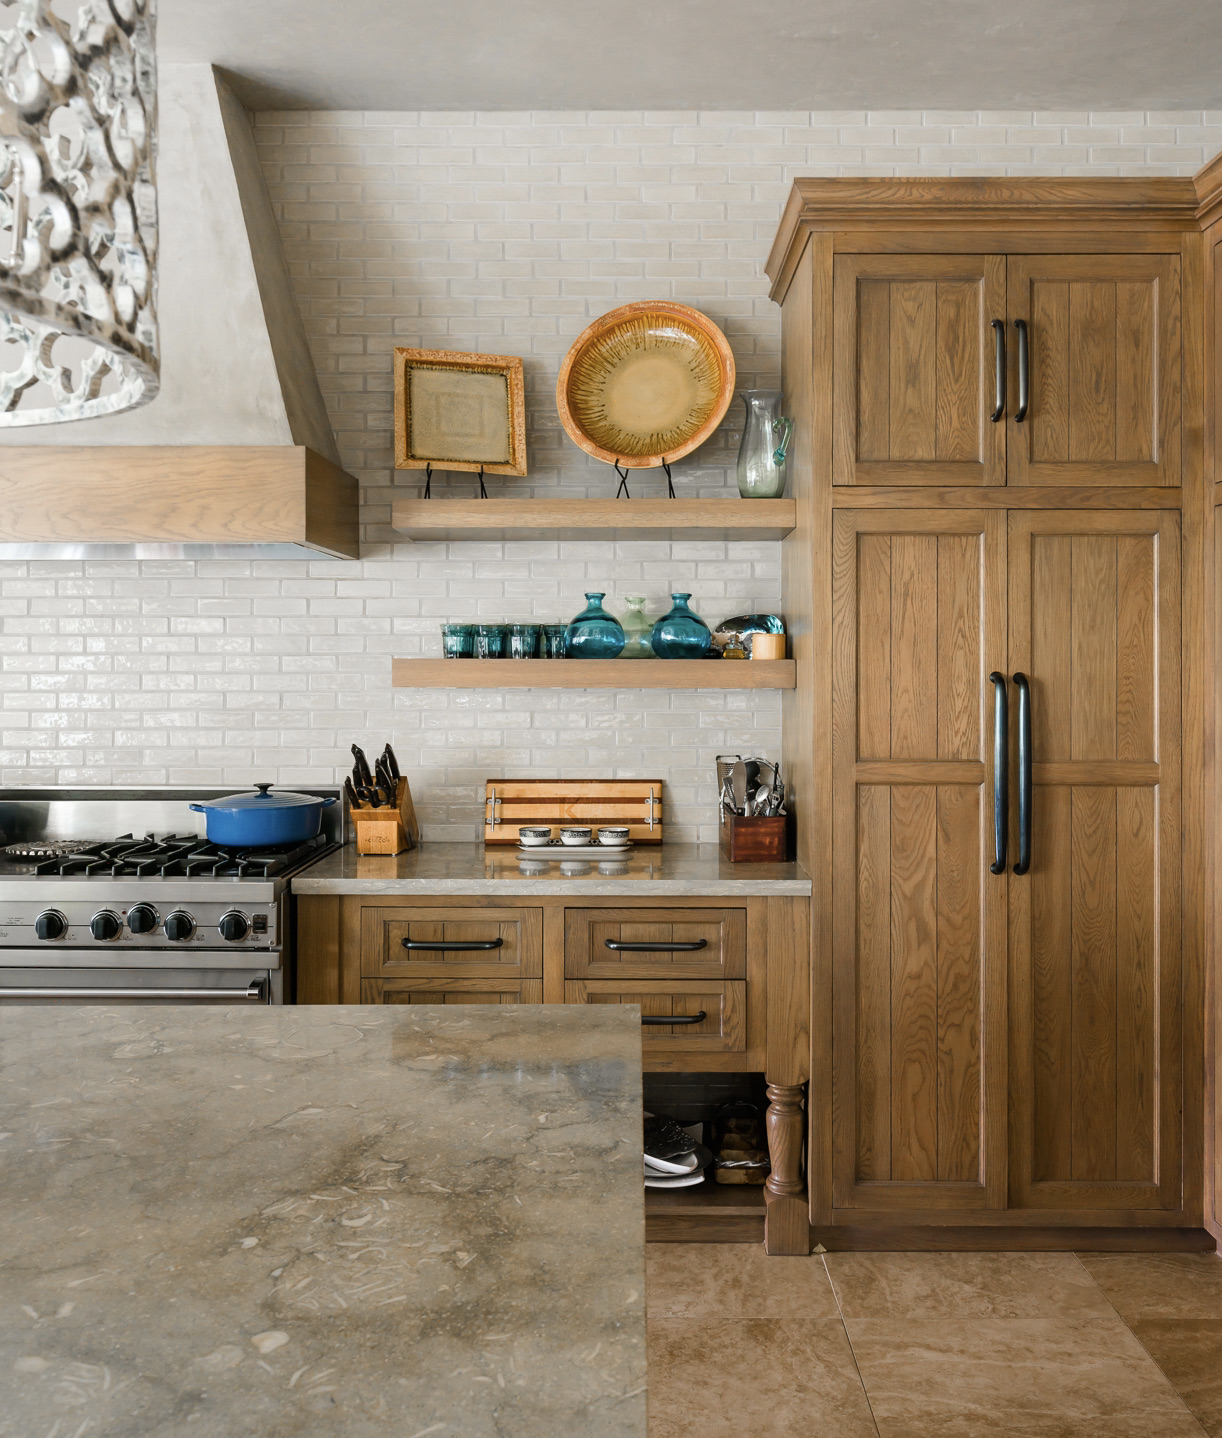 stain-grain wood cabinetry